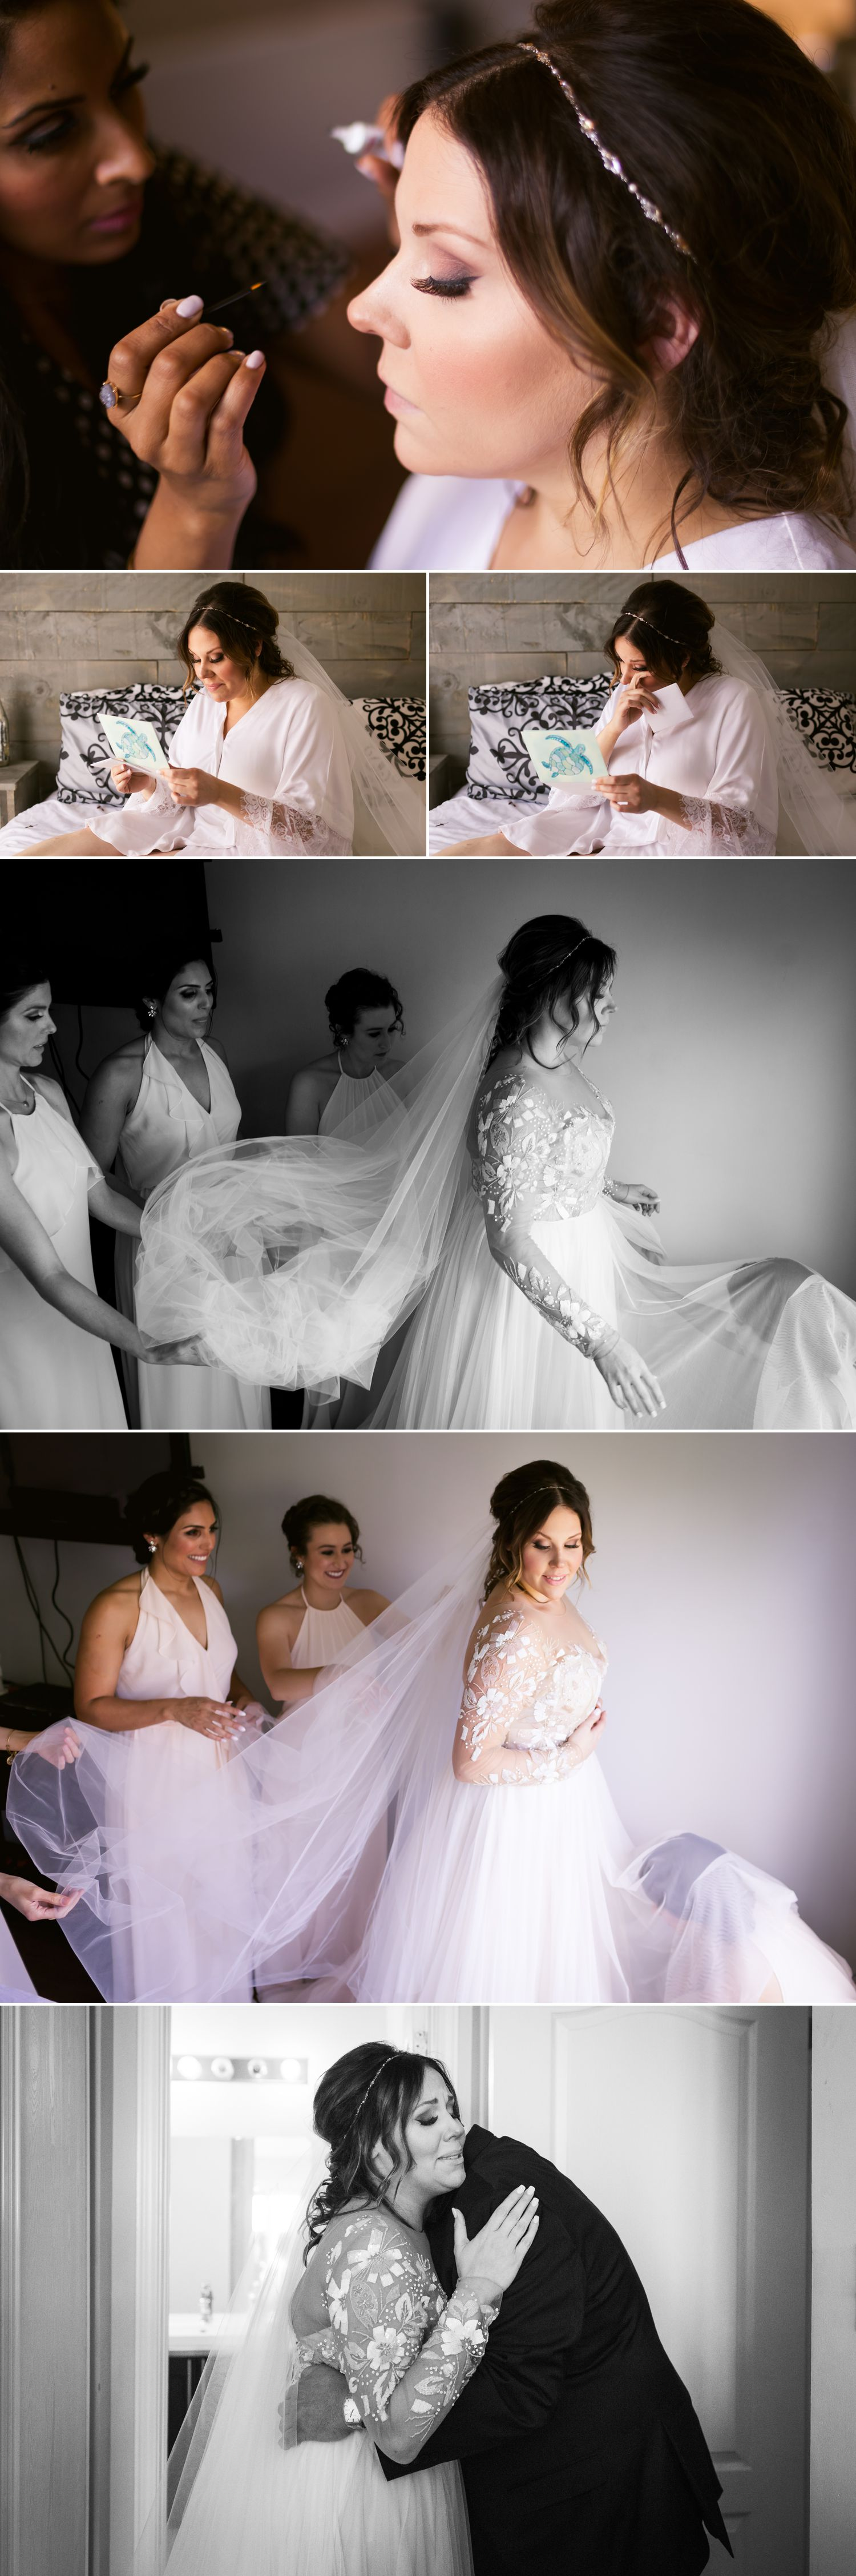 The bride with her bridesmaids getting ready together at their home in Ottawa